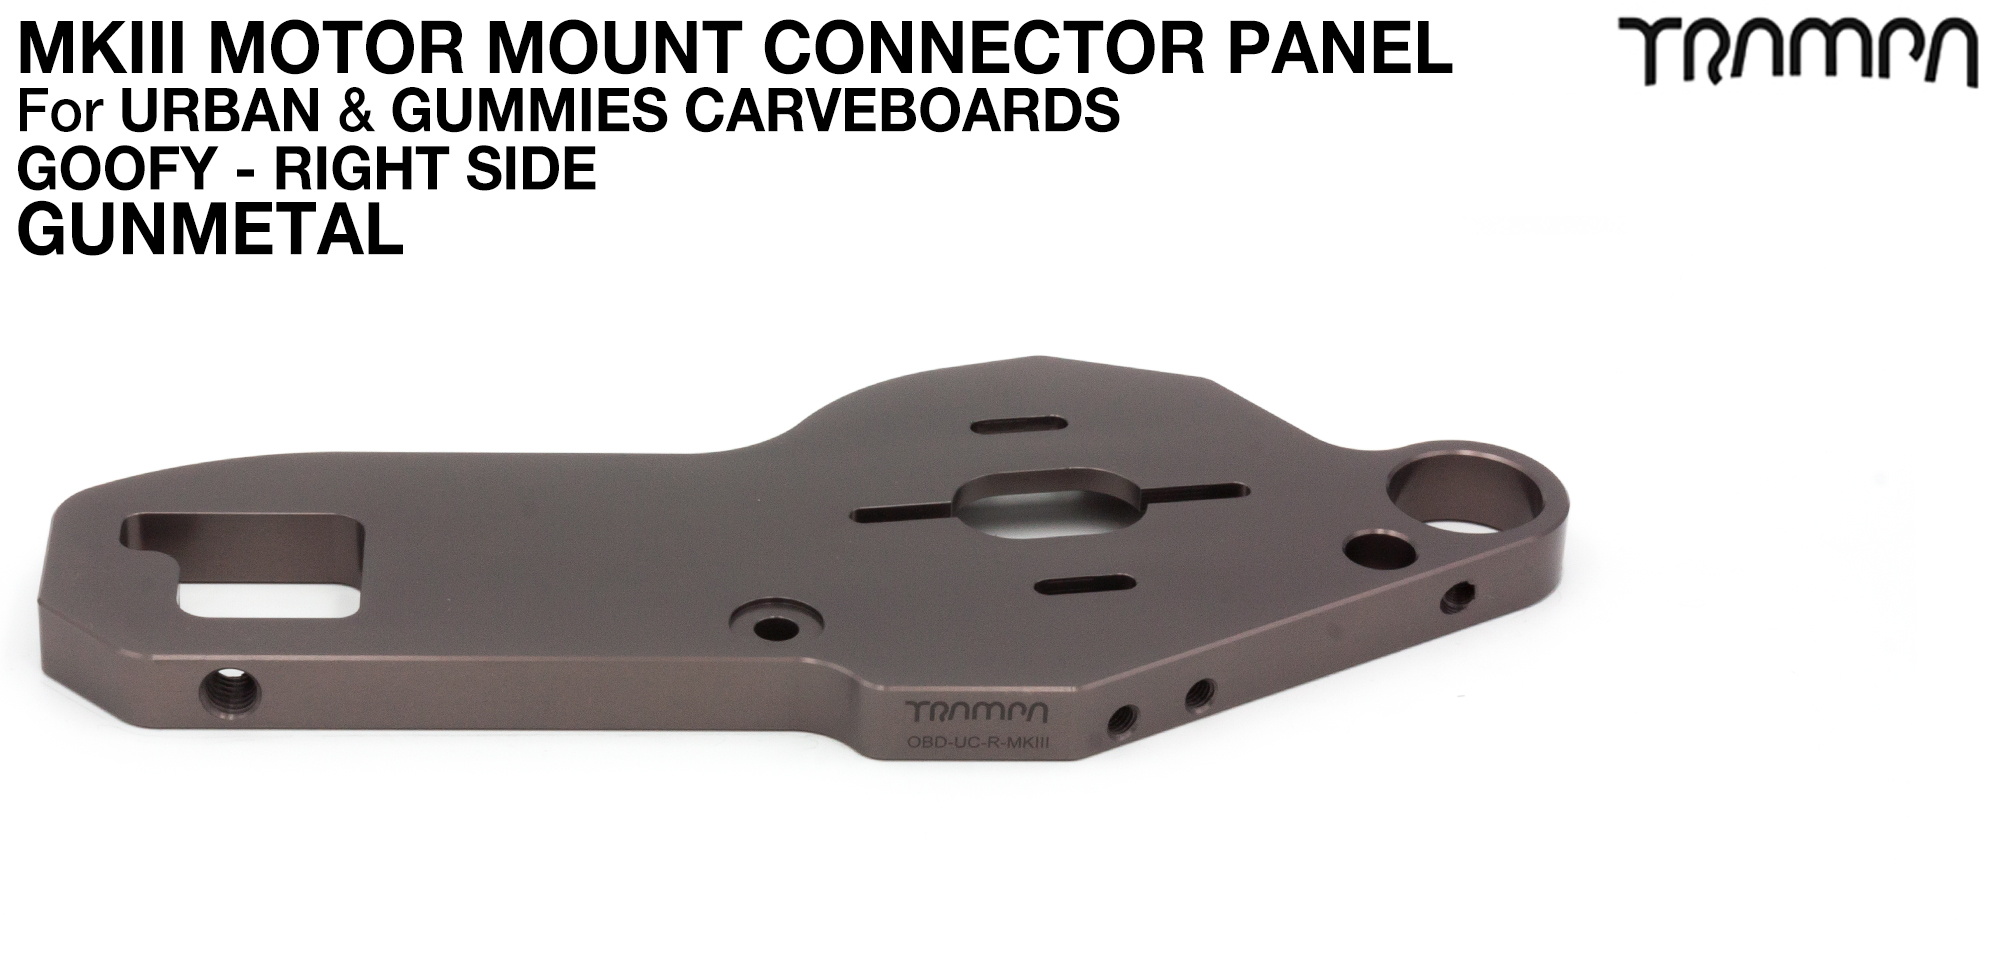 TWIN URBAN CARVE Motor Mount - GUNMETAL